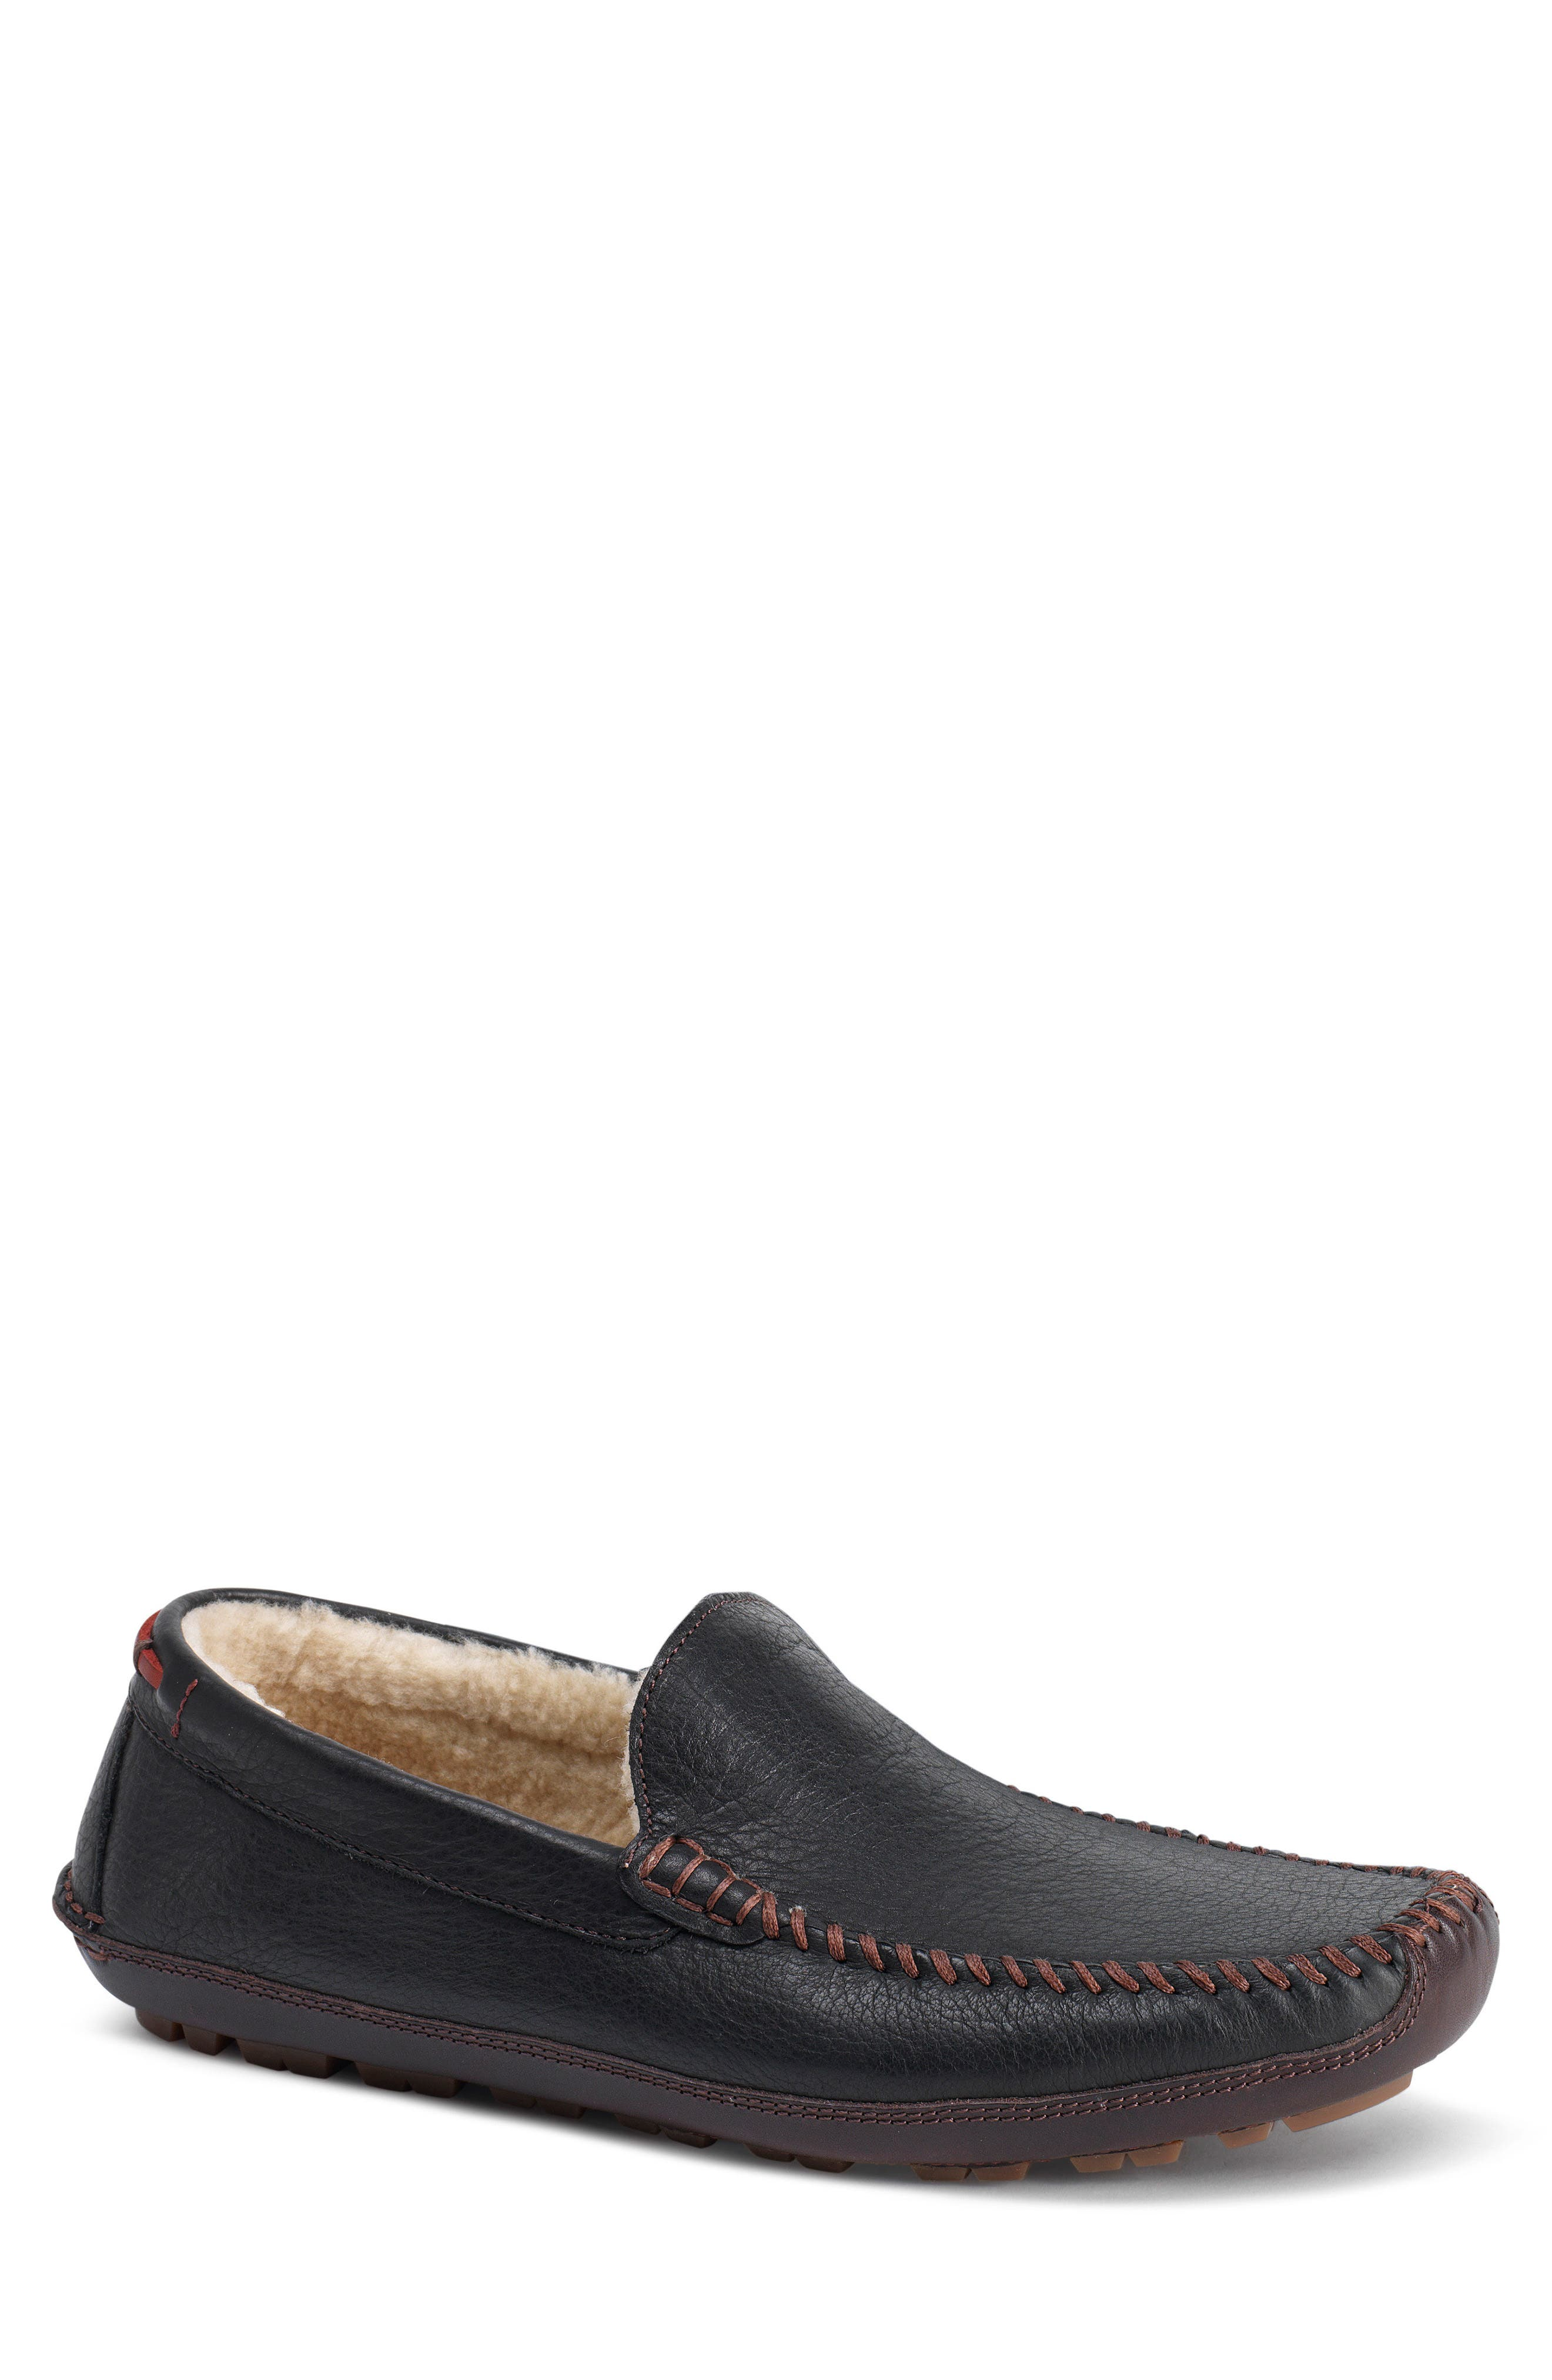 Denton Driving Shoe with Genuine Shearling,                         Main,                         color, Black Leather/ Shearling